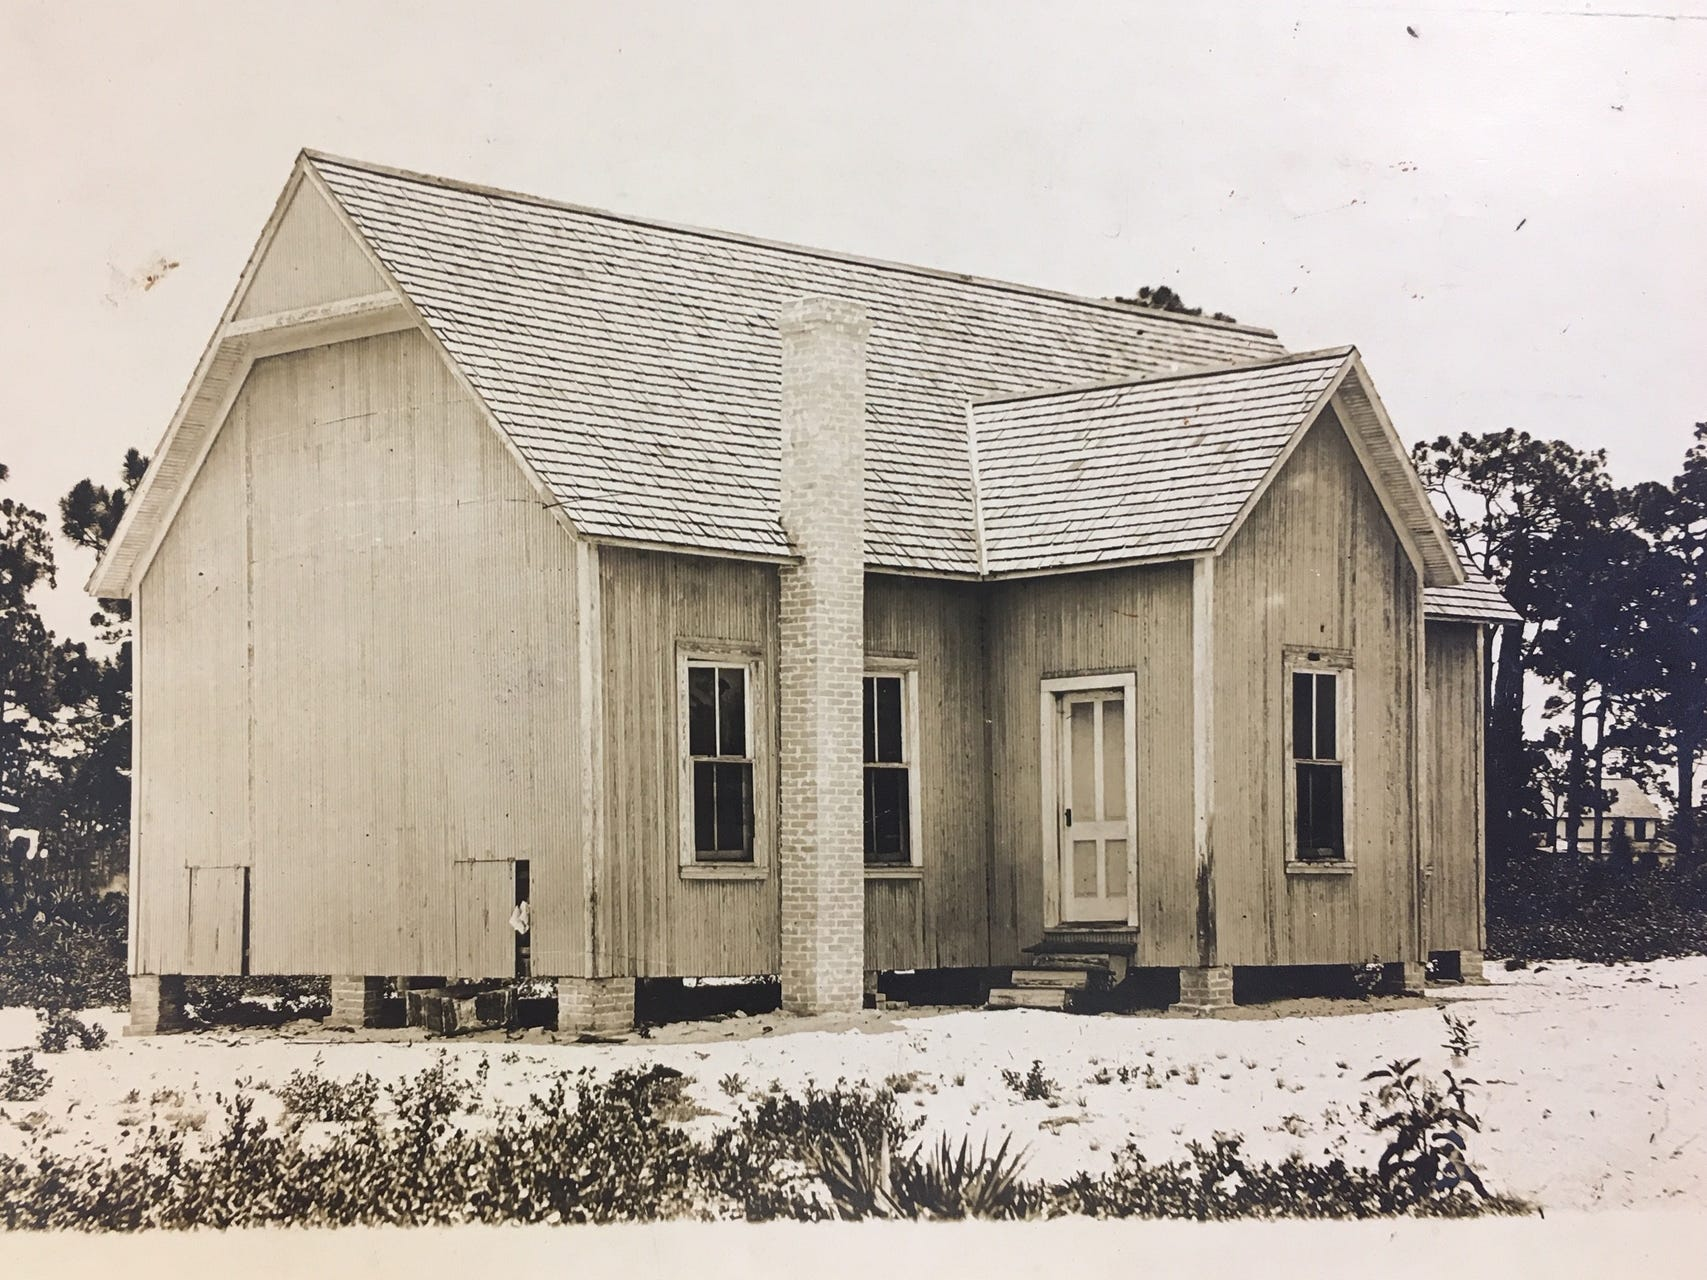 The public school building in Quay, pre-1920.